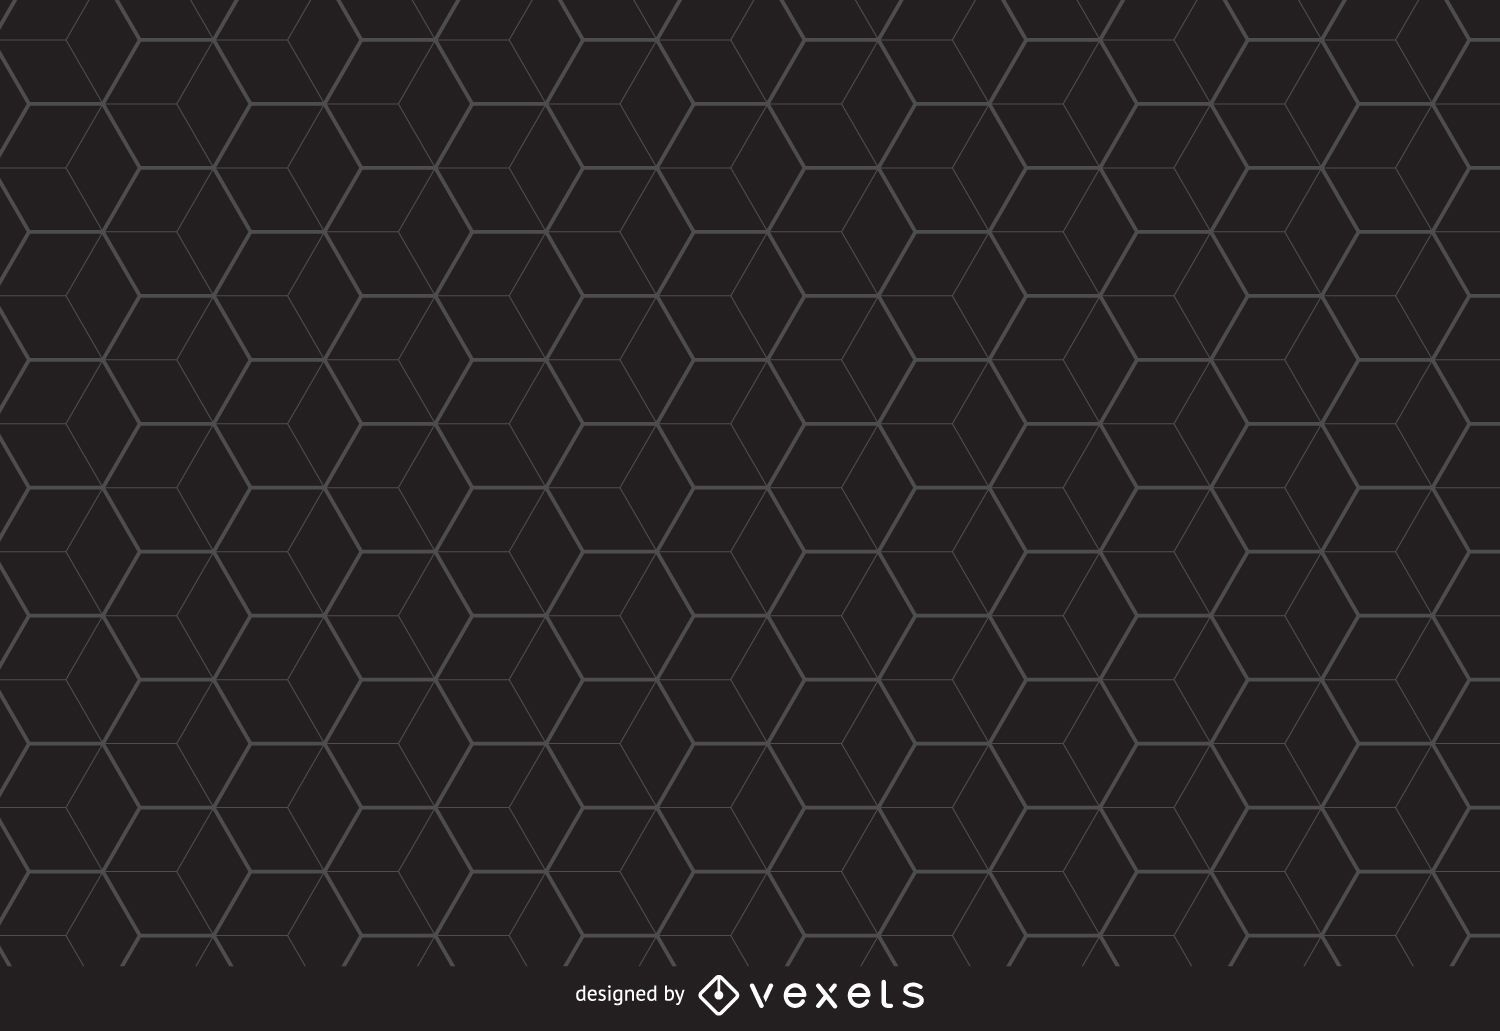 Linear hexagon pattern background - Vector download